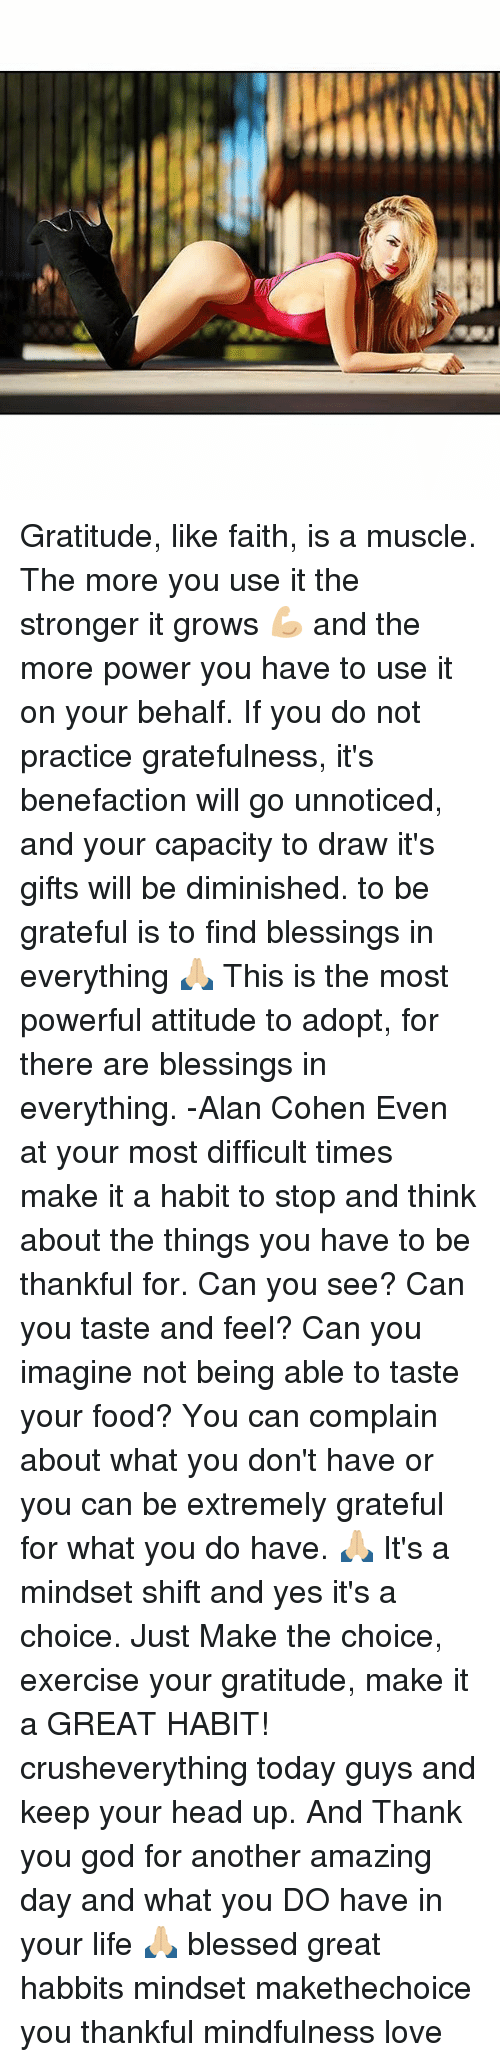 Amazing: Gratitude, like faith, is a muscle. The more you use it the stronger it grows 💪🏼 and the more power you have to use it on your behalf. If you do not practice gratefulness, it's benefaction will go unnoticed, and your capacity to draw it's gifts will be diminished. to be grateful is to find blessings in everything 🙏🏼 This is the most powerful attitude to adopt, for there are blessings in everything. -Alan Cohen Even at your most difficult times make it a habit to stop and think about the things you have to be thankful for. Can you see? Can you taste and feel? Can you imagine not being able to taste your food? You can complain about what you don't have or you can be extremely grateful for what you do have. 🙏🏼 It's a mindset shift and yes it's a choice. Just Make the choice, exercise your gratitude, make it a GREAT HABIT! crusheverything today guys and keep your head up. And Thank you god for another amazing day and what you DO have in your life 🙏🏼 blessed great habbits mindset makethechoice you thankful mindfulness love